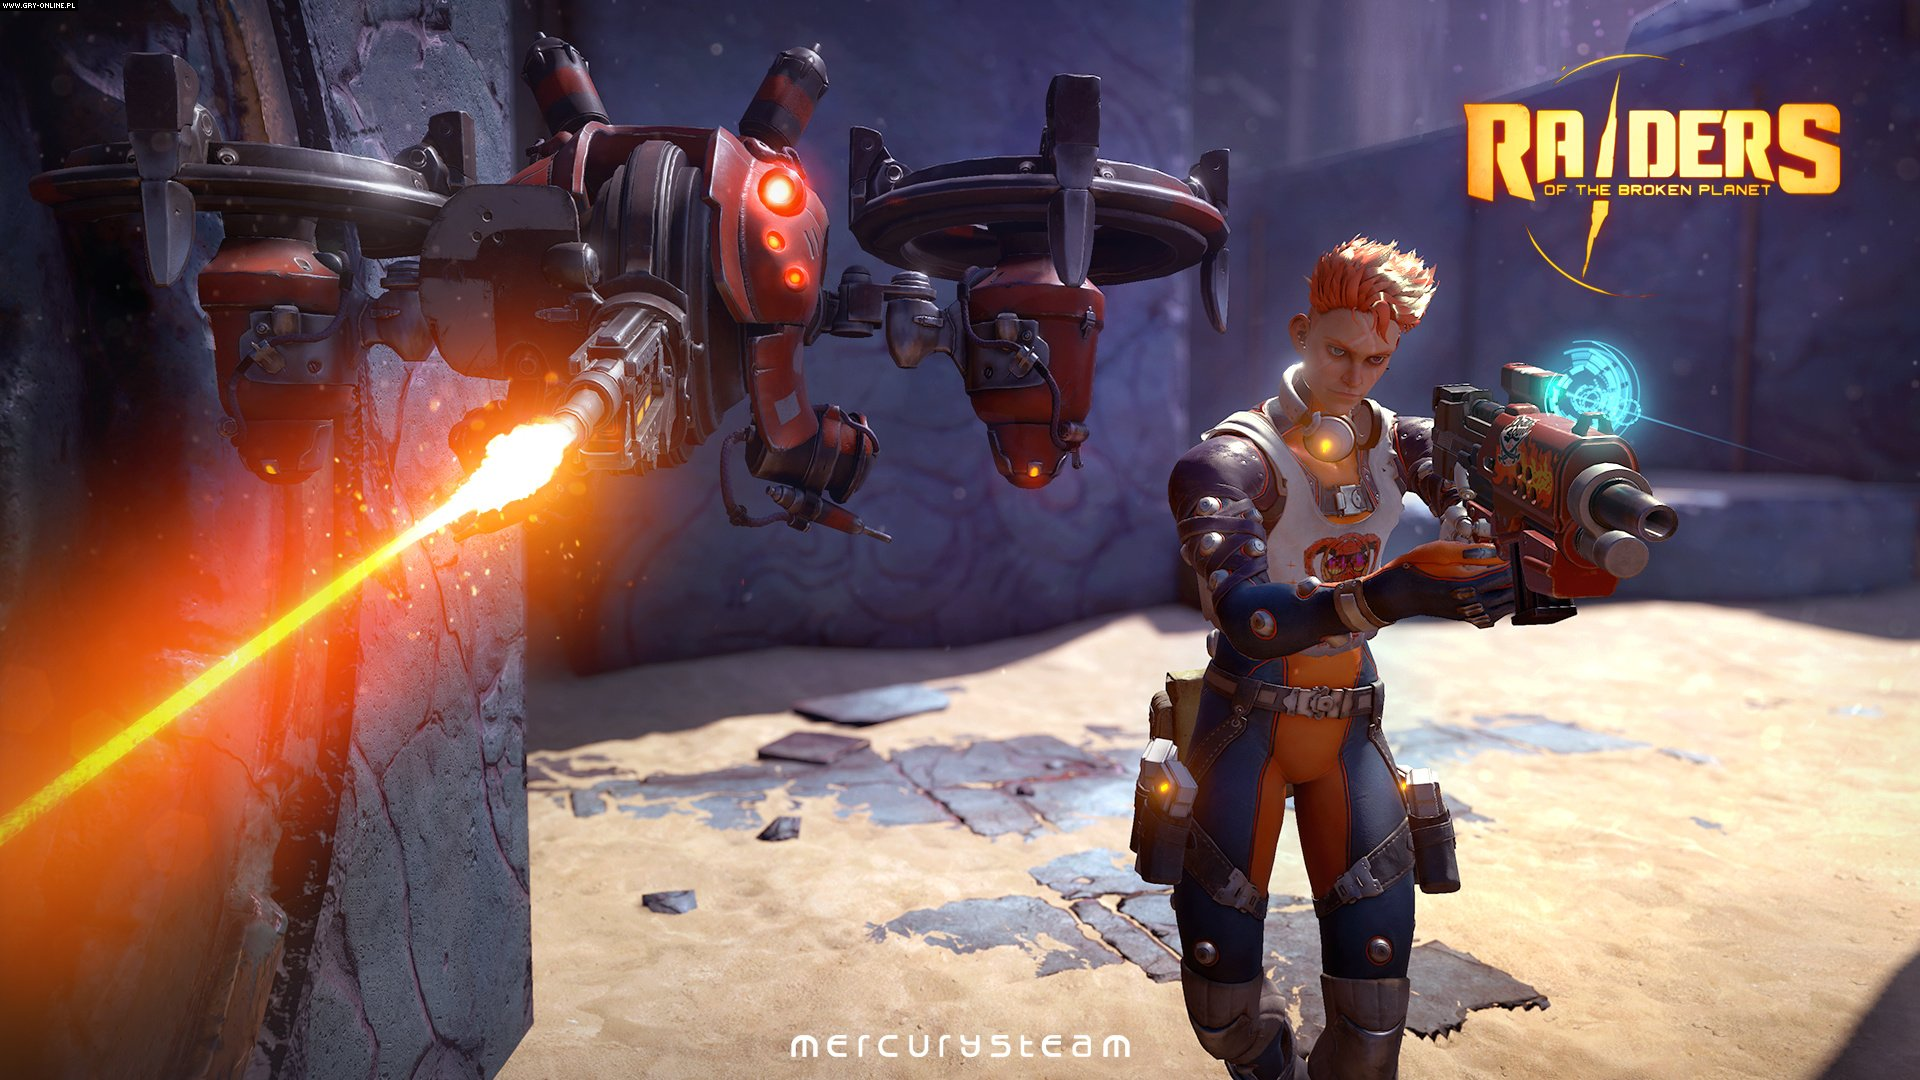 Spacelords PC, PS4, XONE Gry Screen 31/69, Mercury Steam Entertainment, MercurySteam